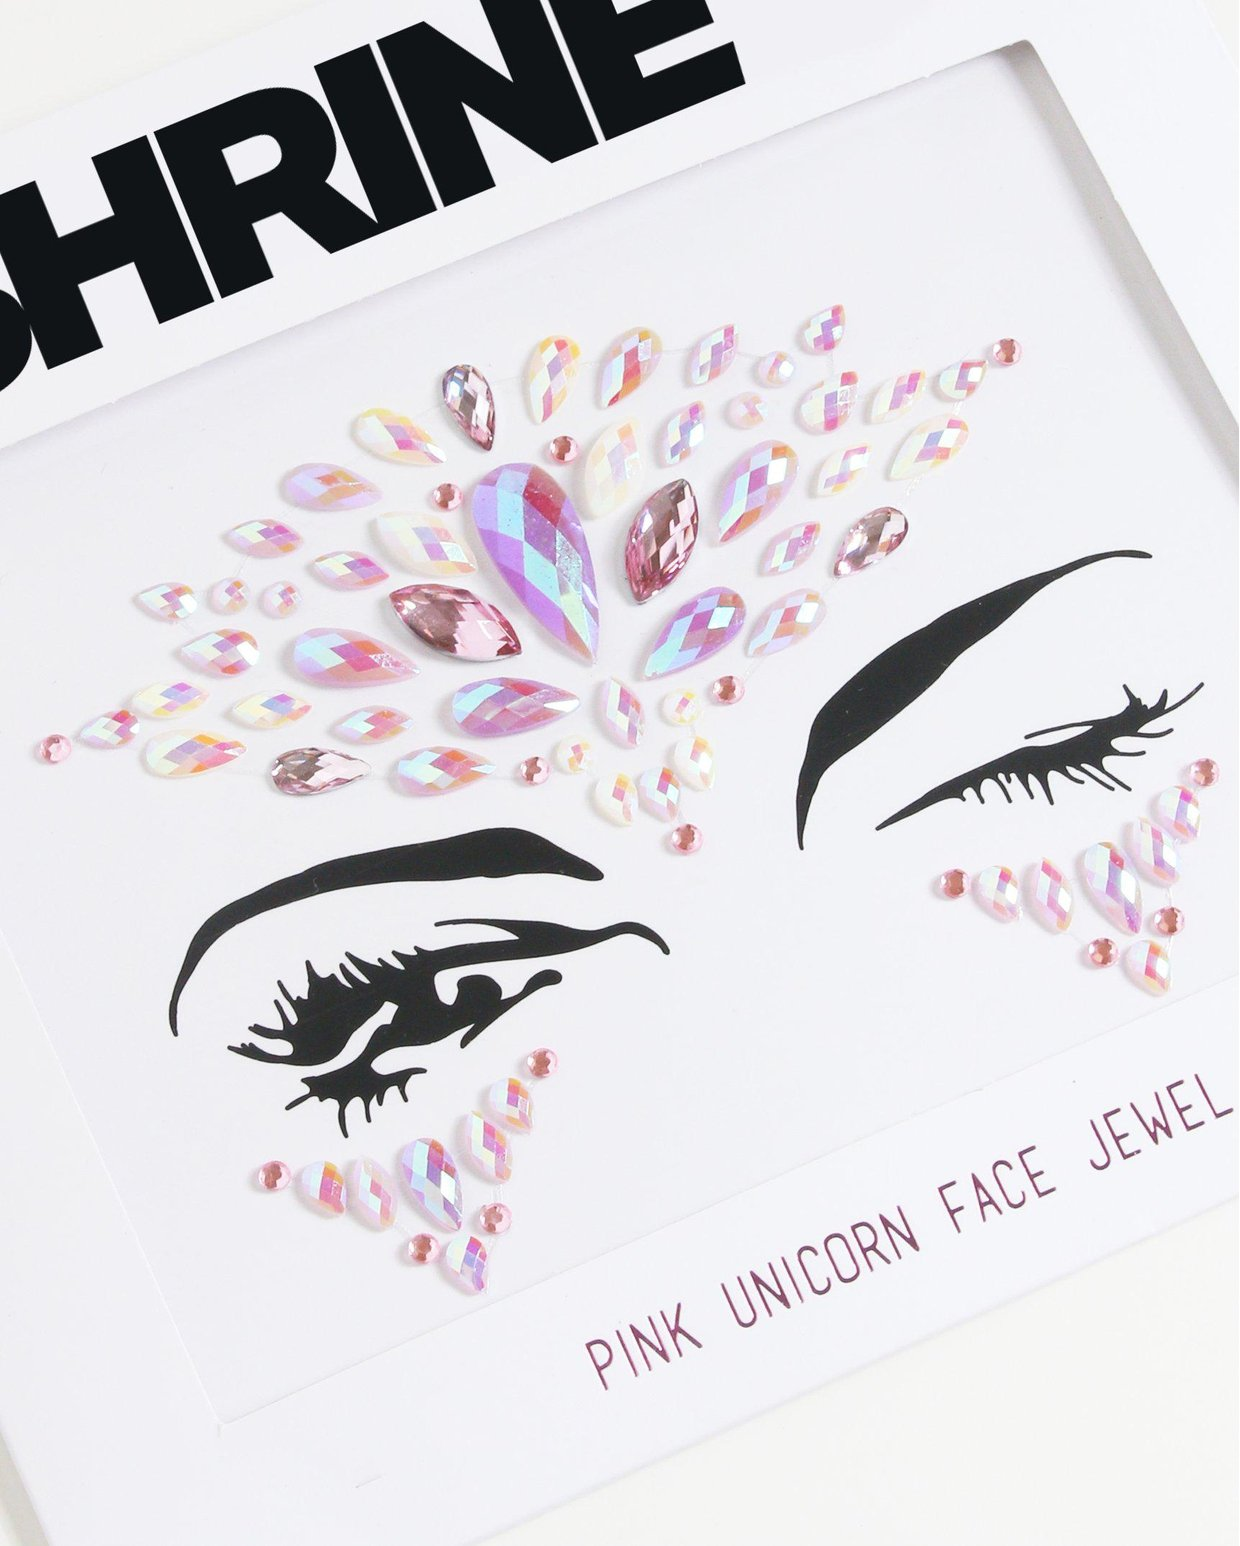 Pink Unicorn Face Jewels